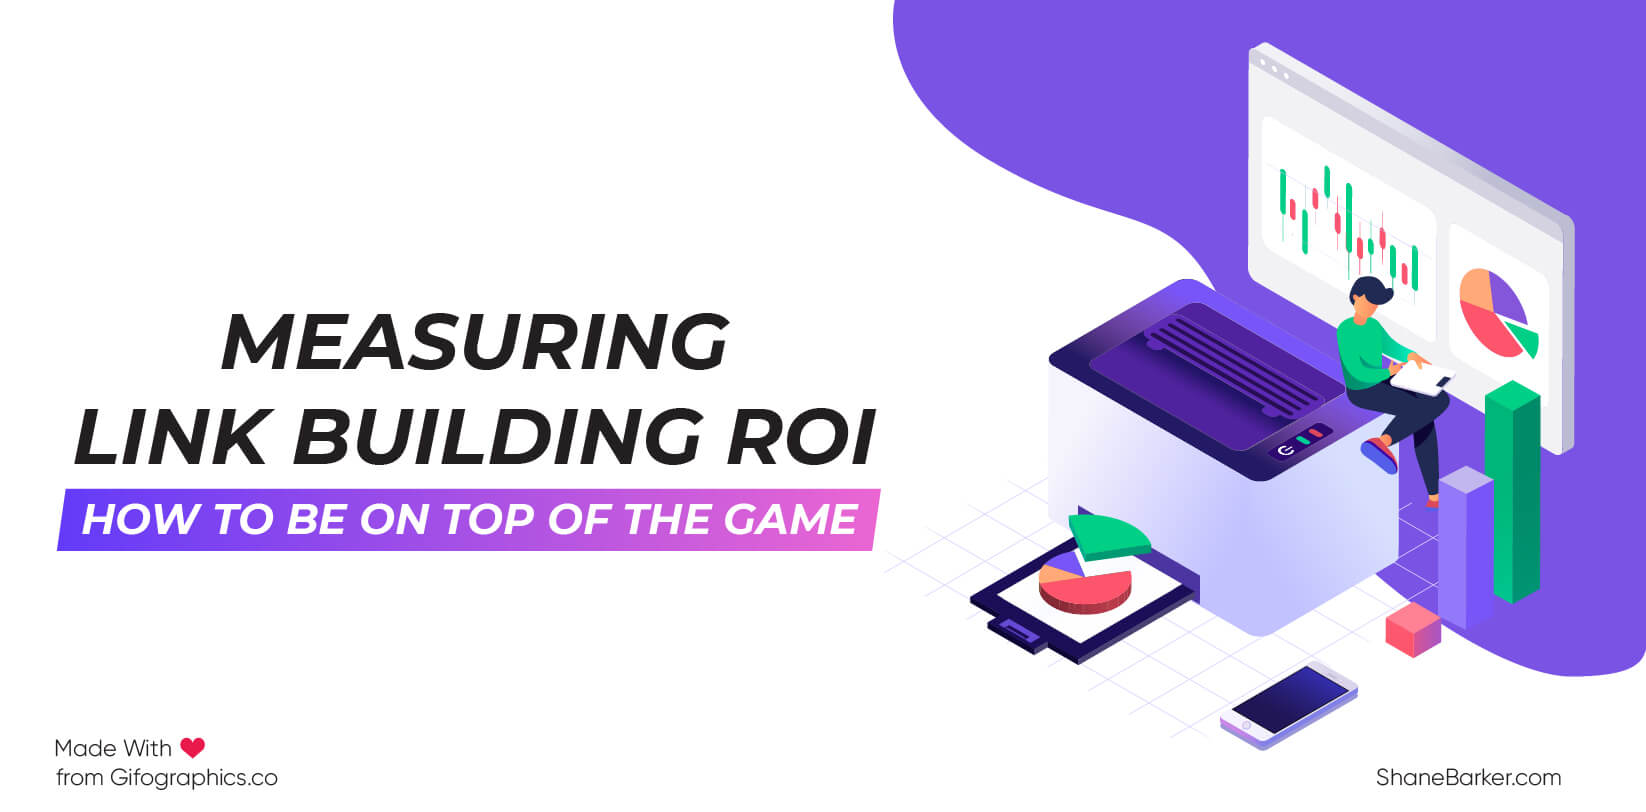 Measuring Link Building ROI How to Be on Top of the Game